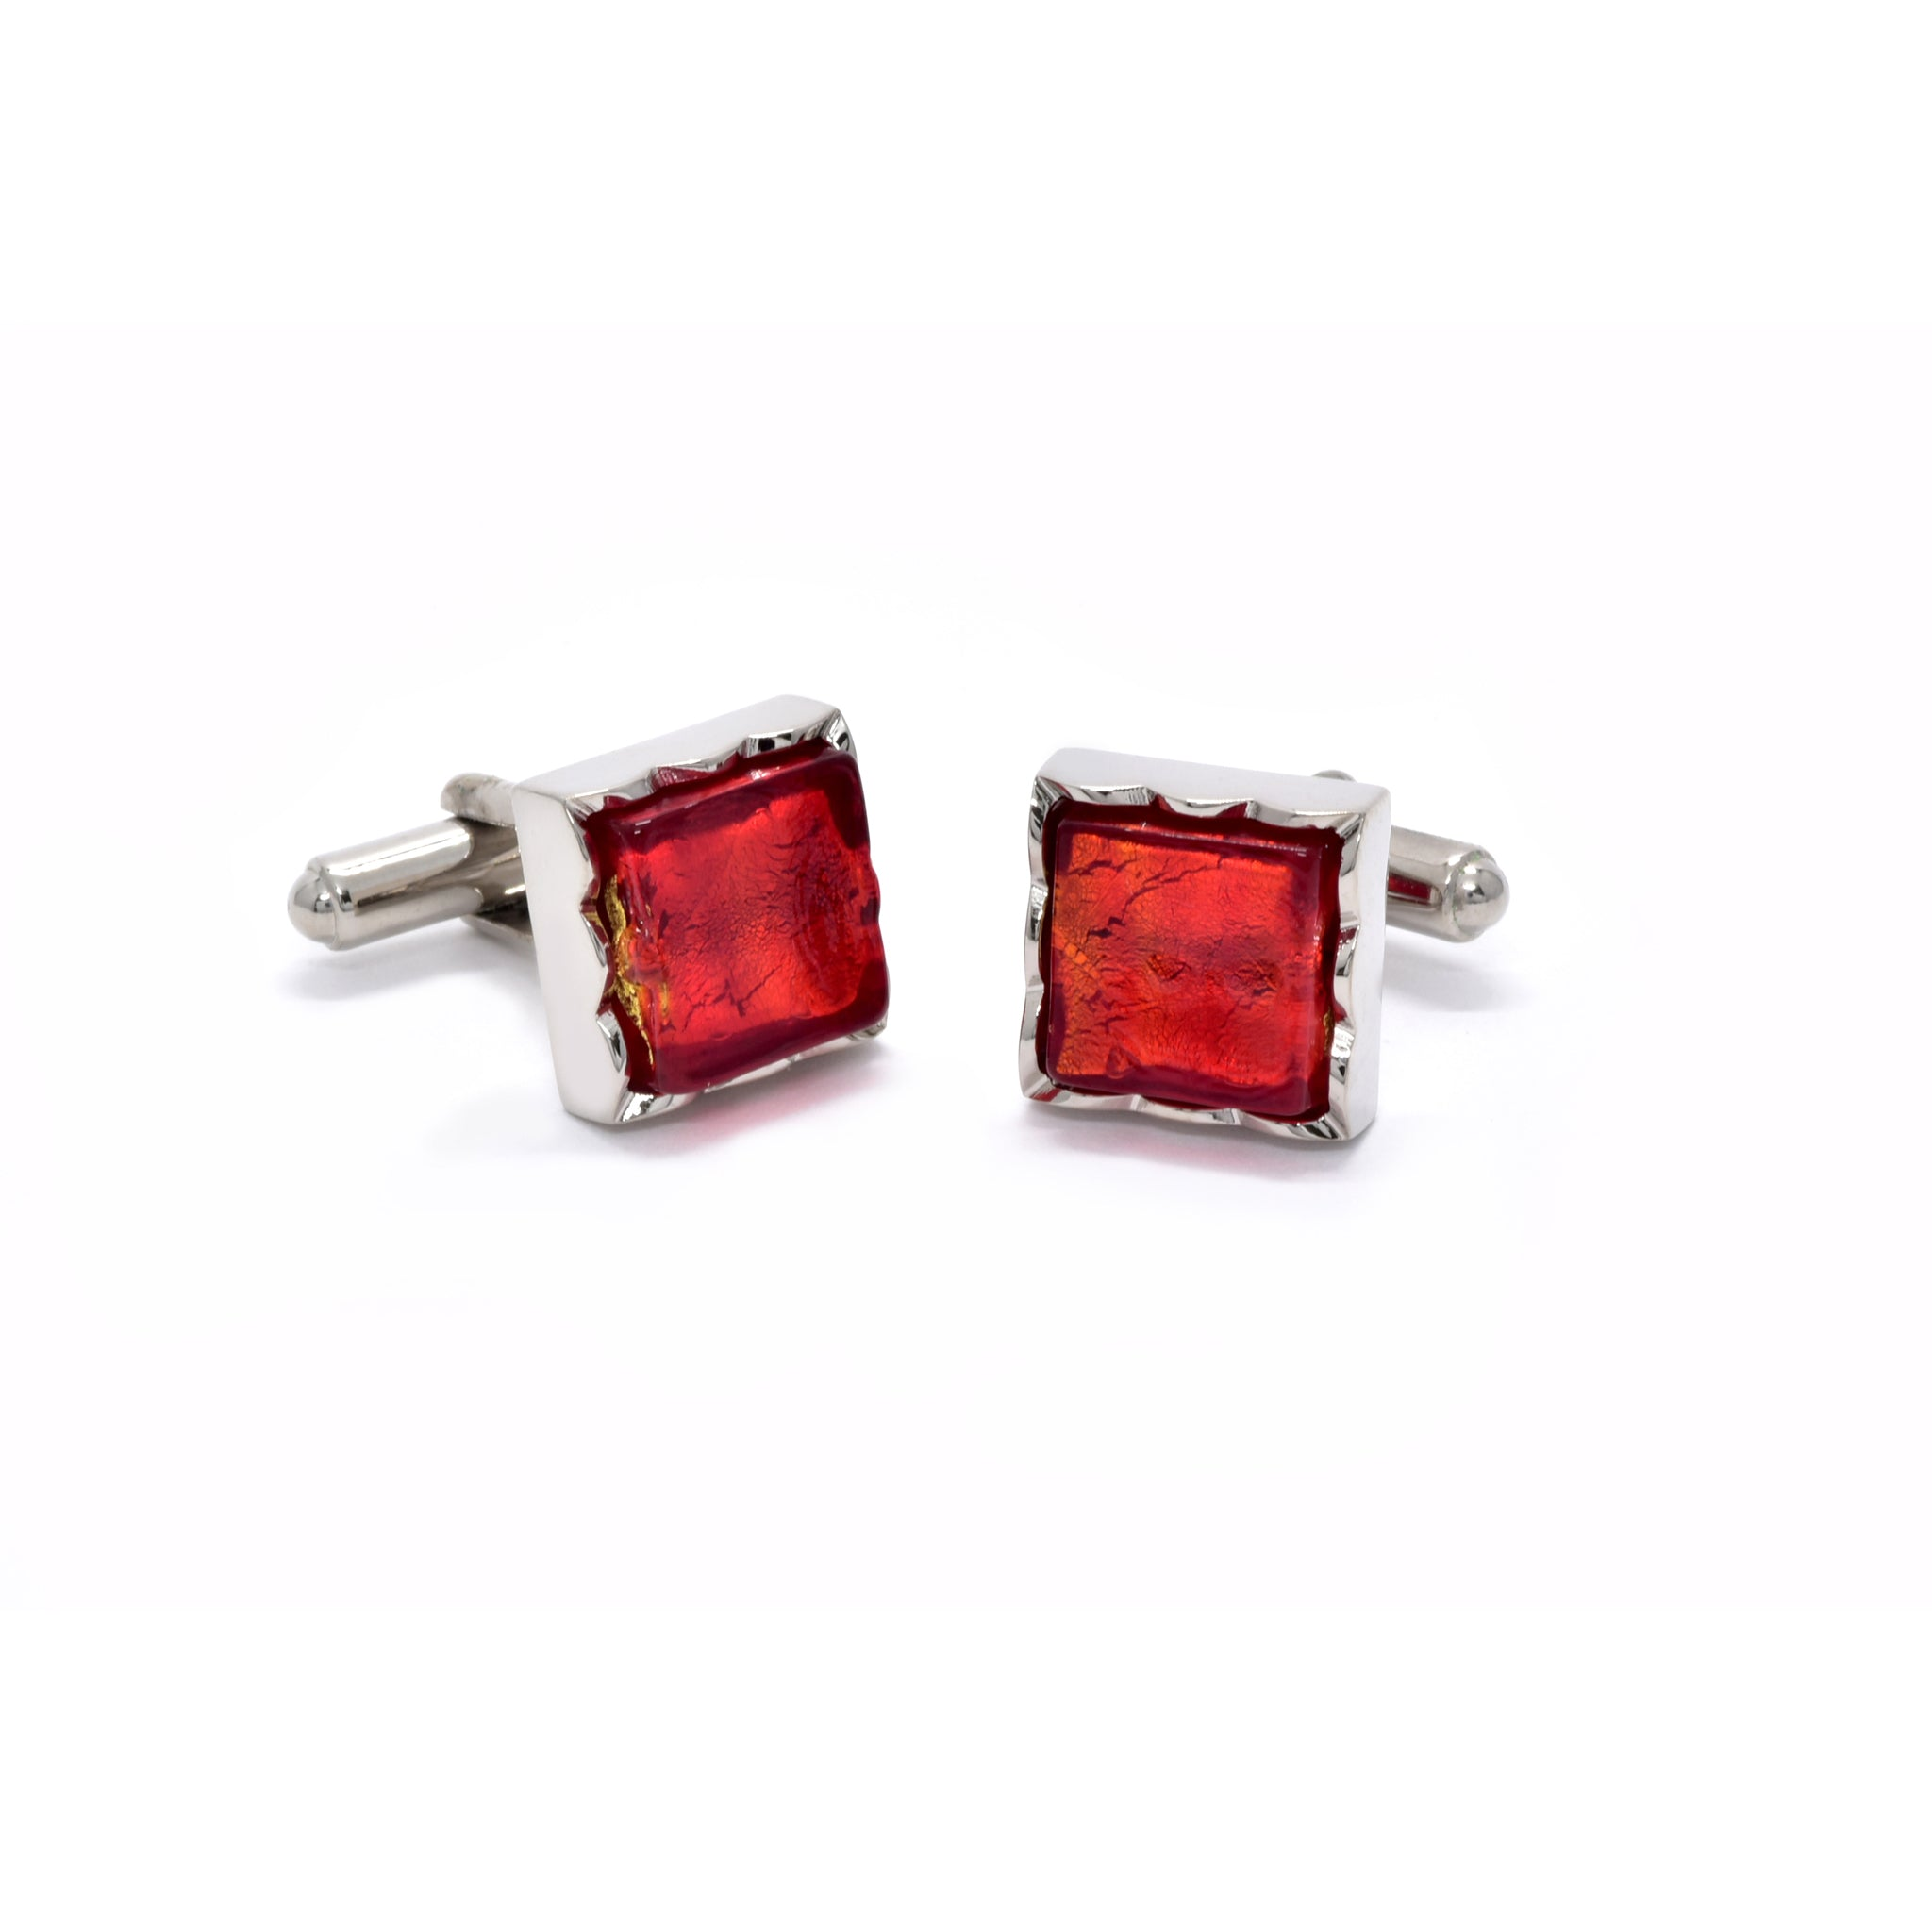 Jacob Cufflinks with Red Murano Glass - Giorgio Mandelli® Official Site | GIORGIO MANDELLI Made in Italy